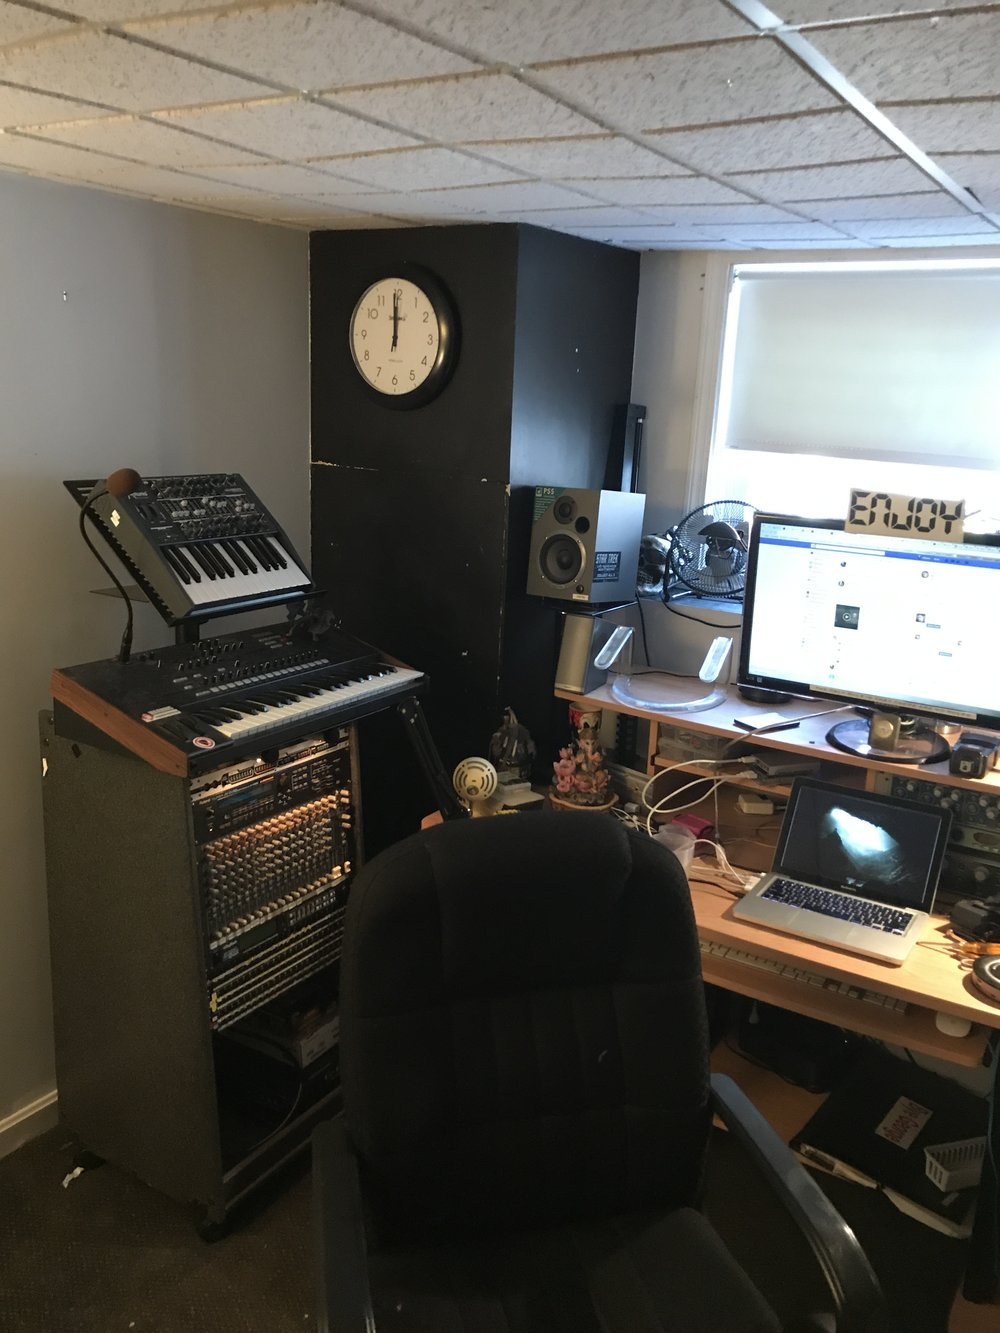 Desk with tower containing Minibrute and MS2000B